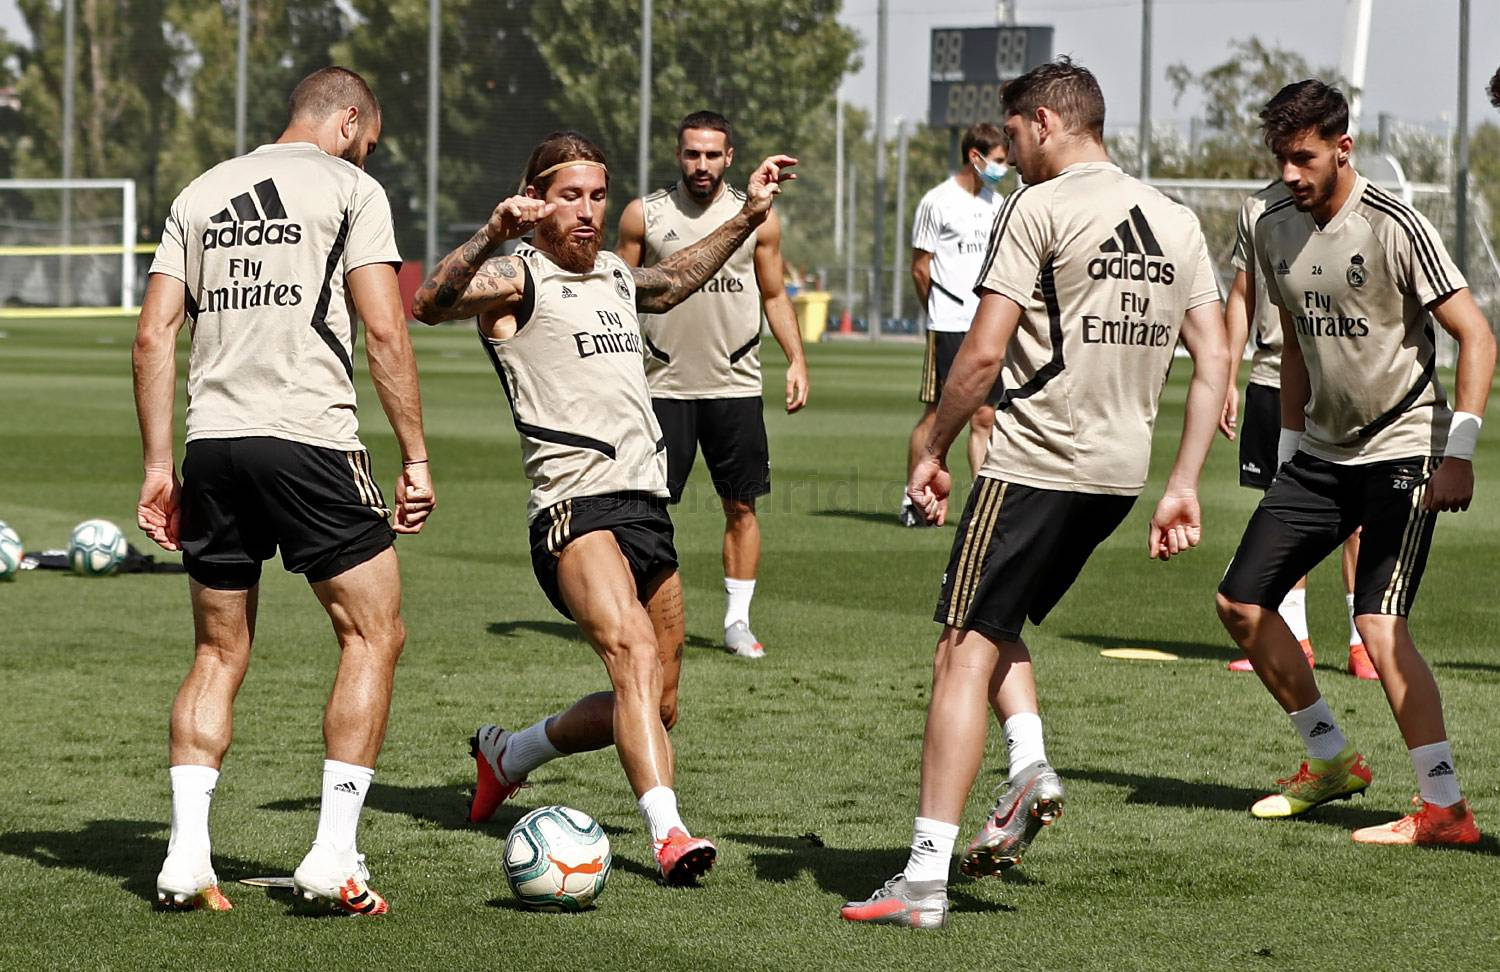 Real Madrid - Entrenamiento del Real Madrid  - 12-07-2020